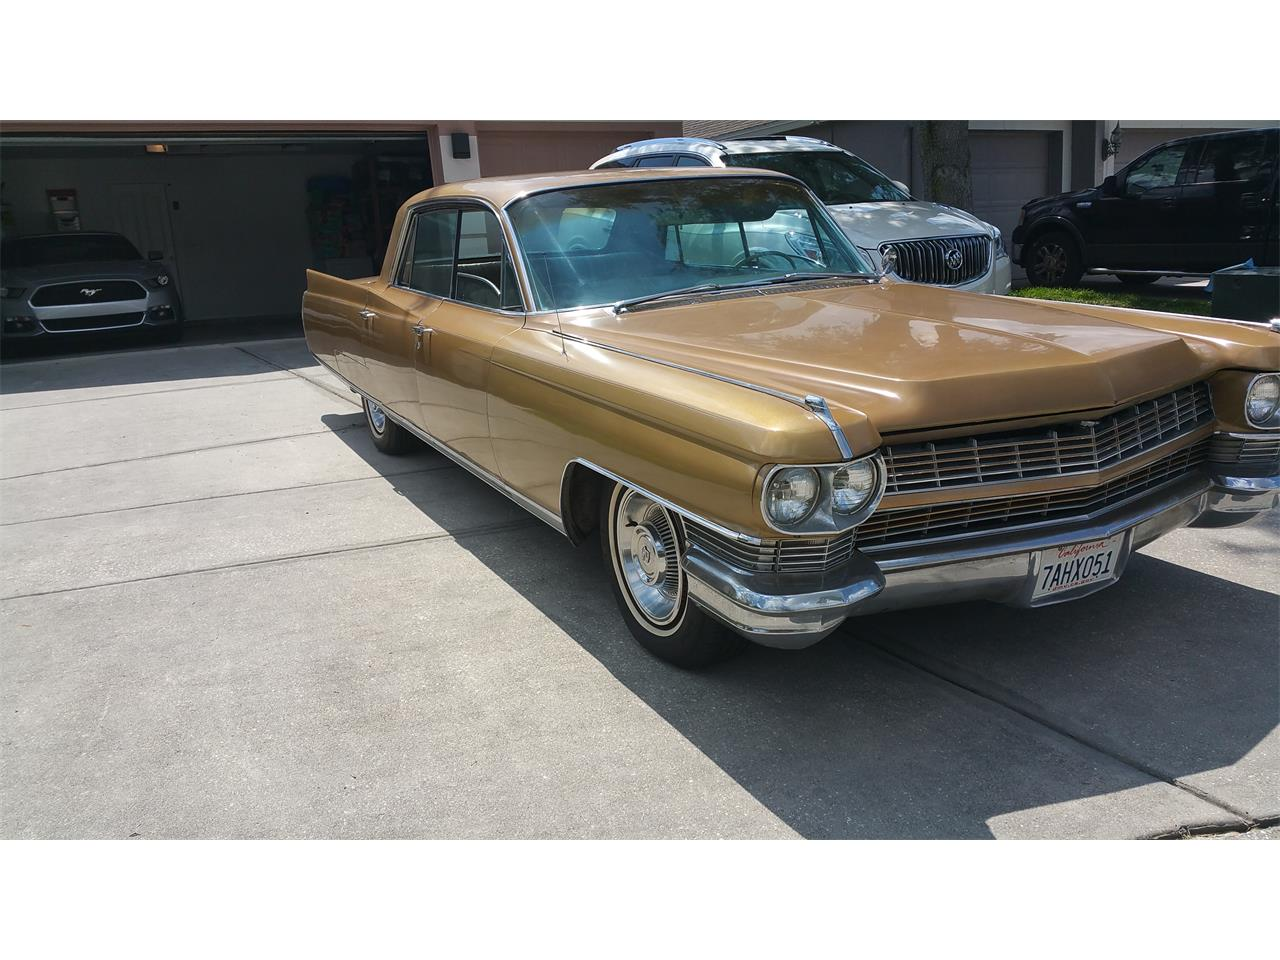 Large Picture of Classic 1964 Cadillac Fleetwood 60 Special - IDPD